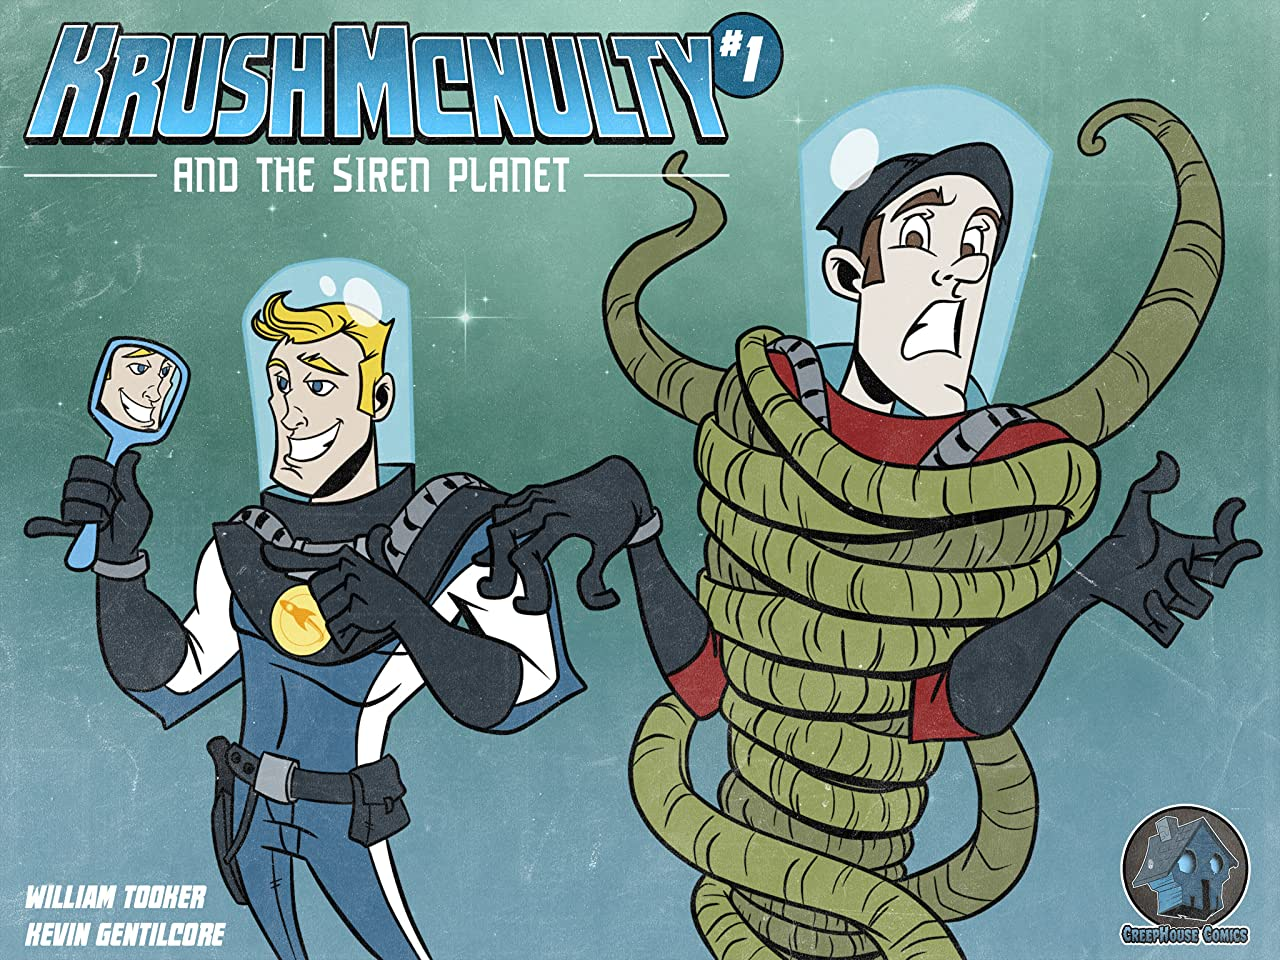 Krush McNulty #1